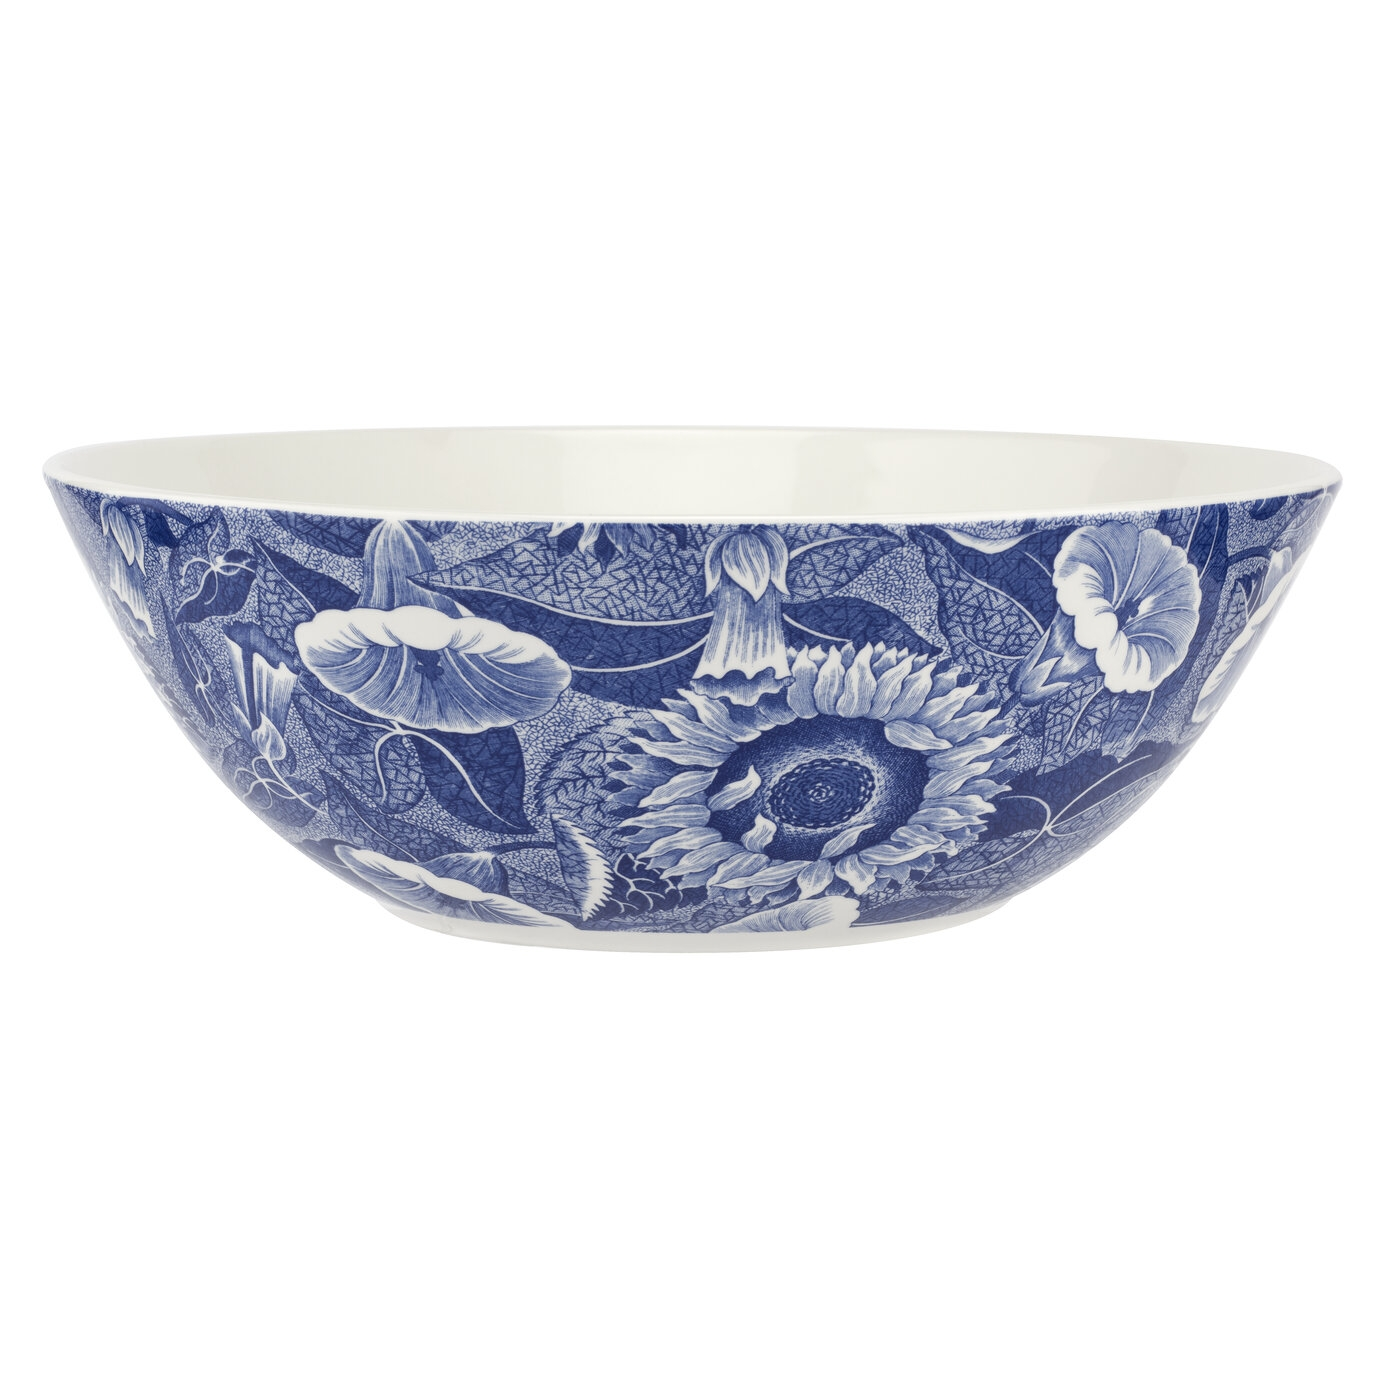 Spode Blue Room Sunflower 10.5 Inch Salad Bowl image number 0